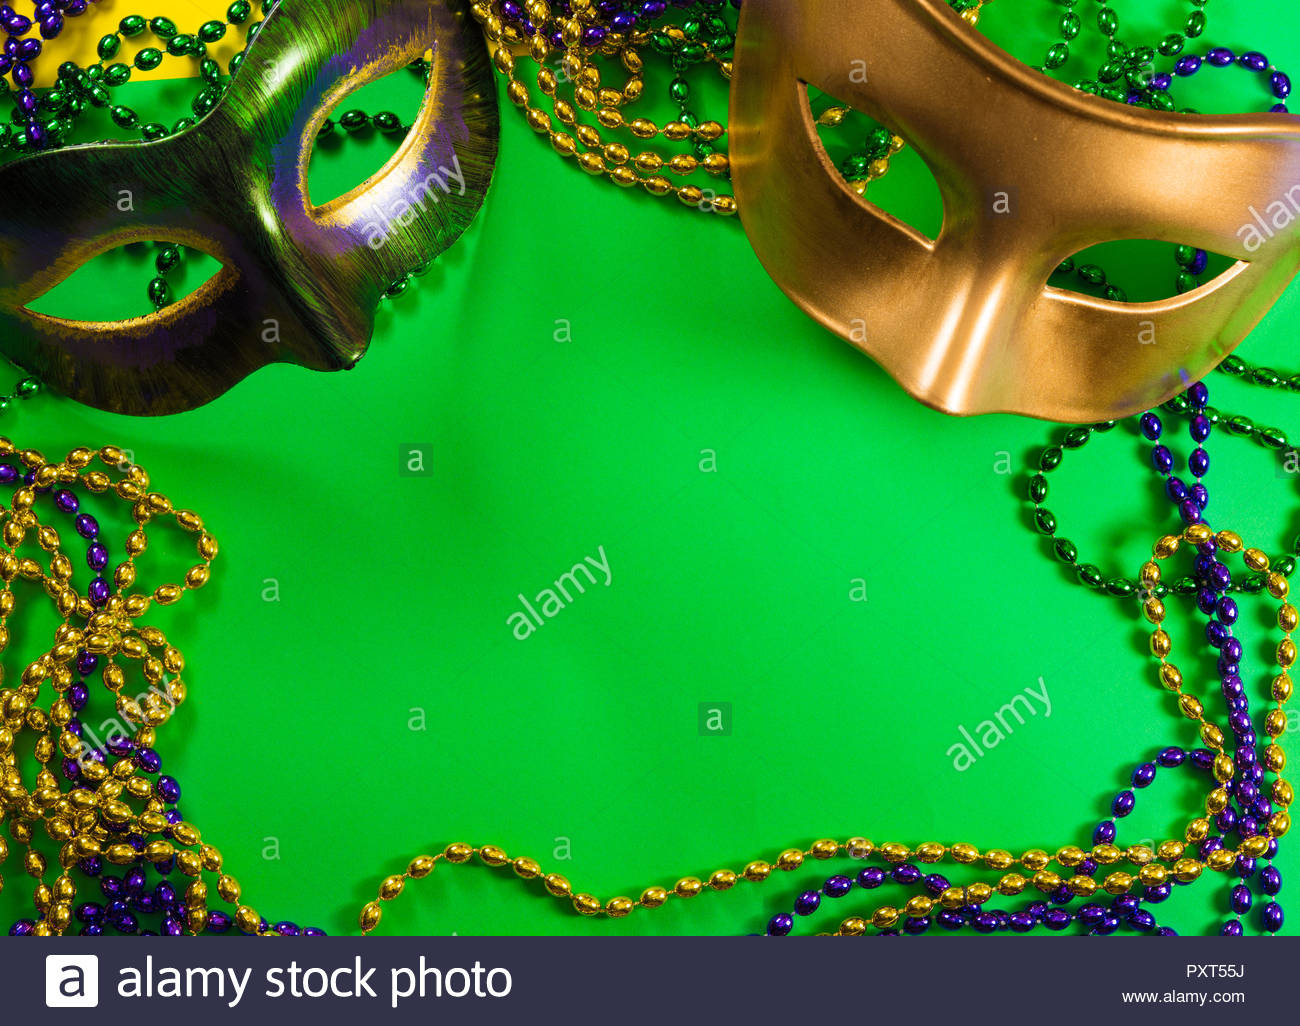 Mardi Gras mask with beads on a green background Stock Photo 1300x1026